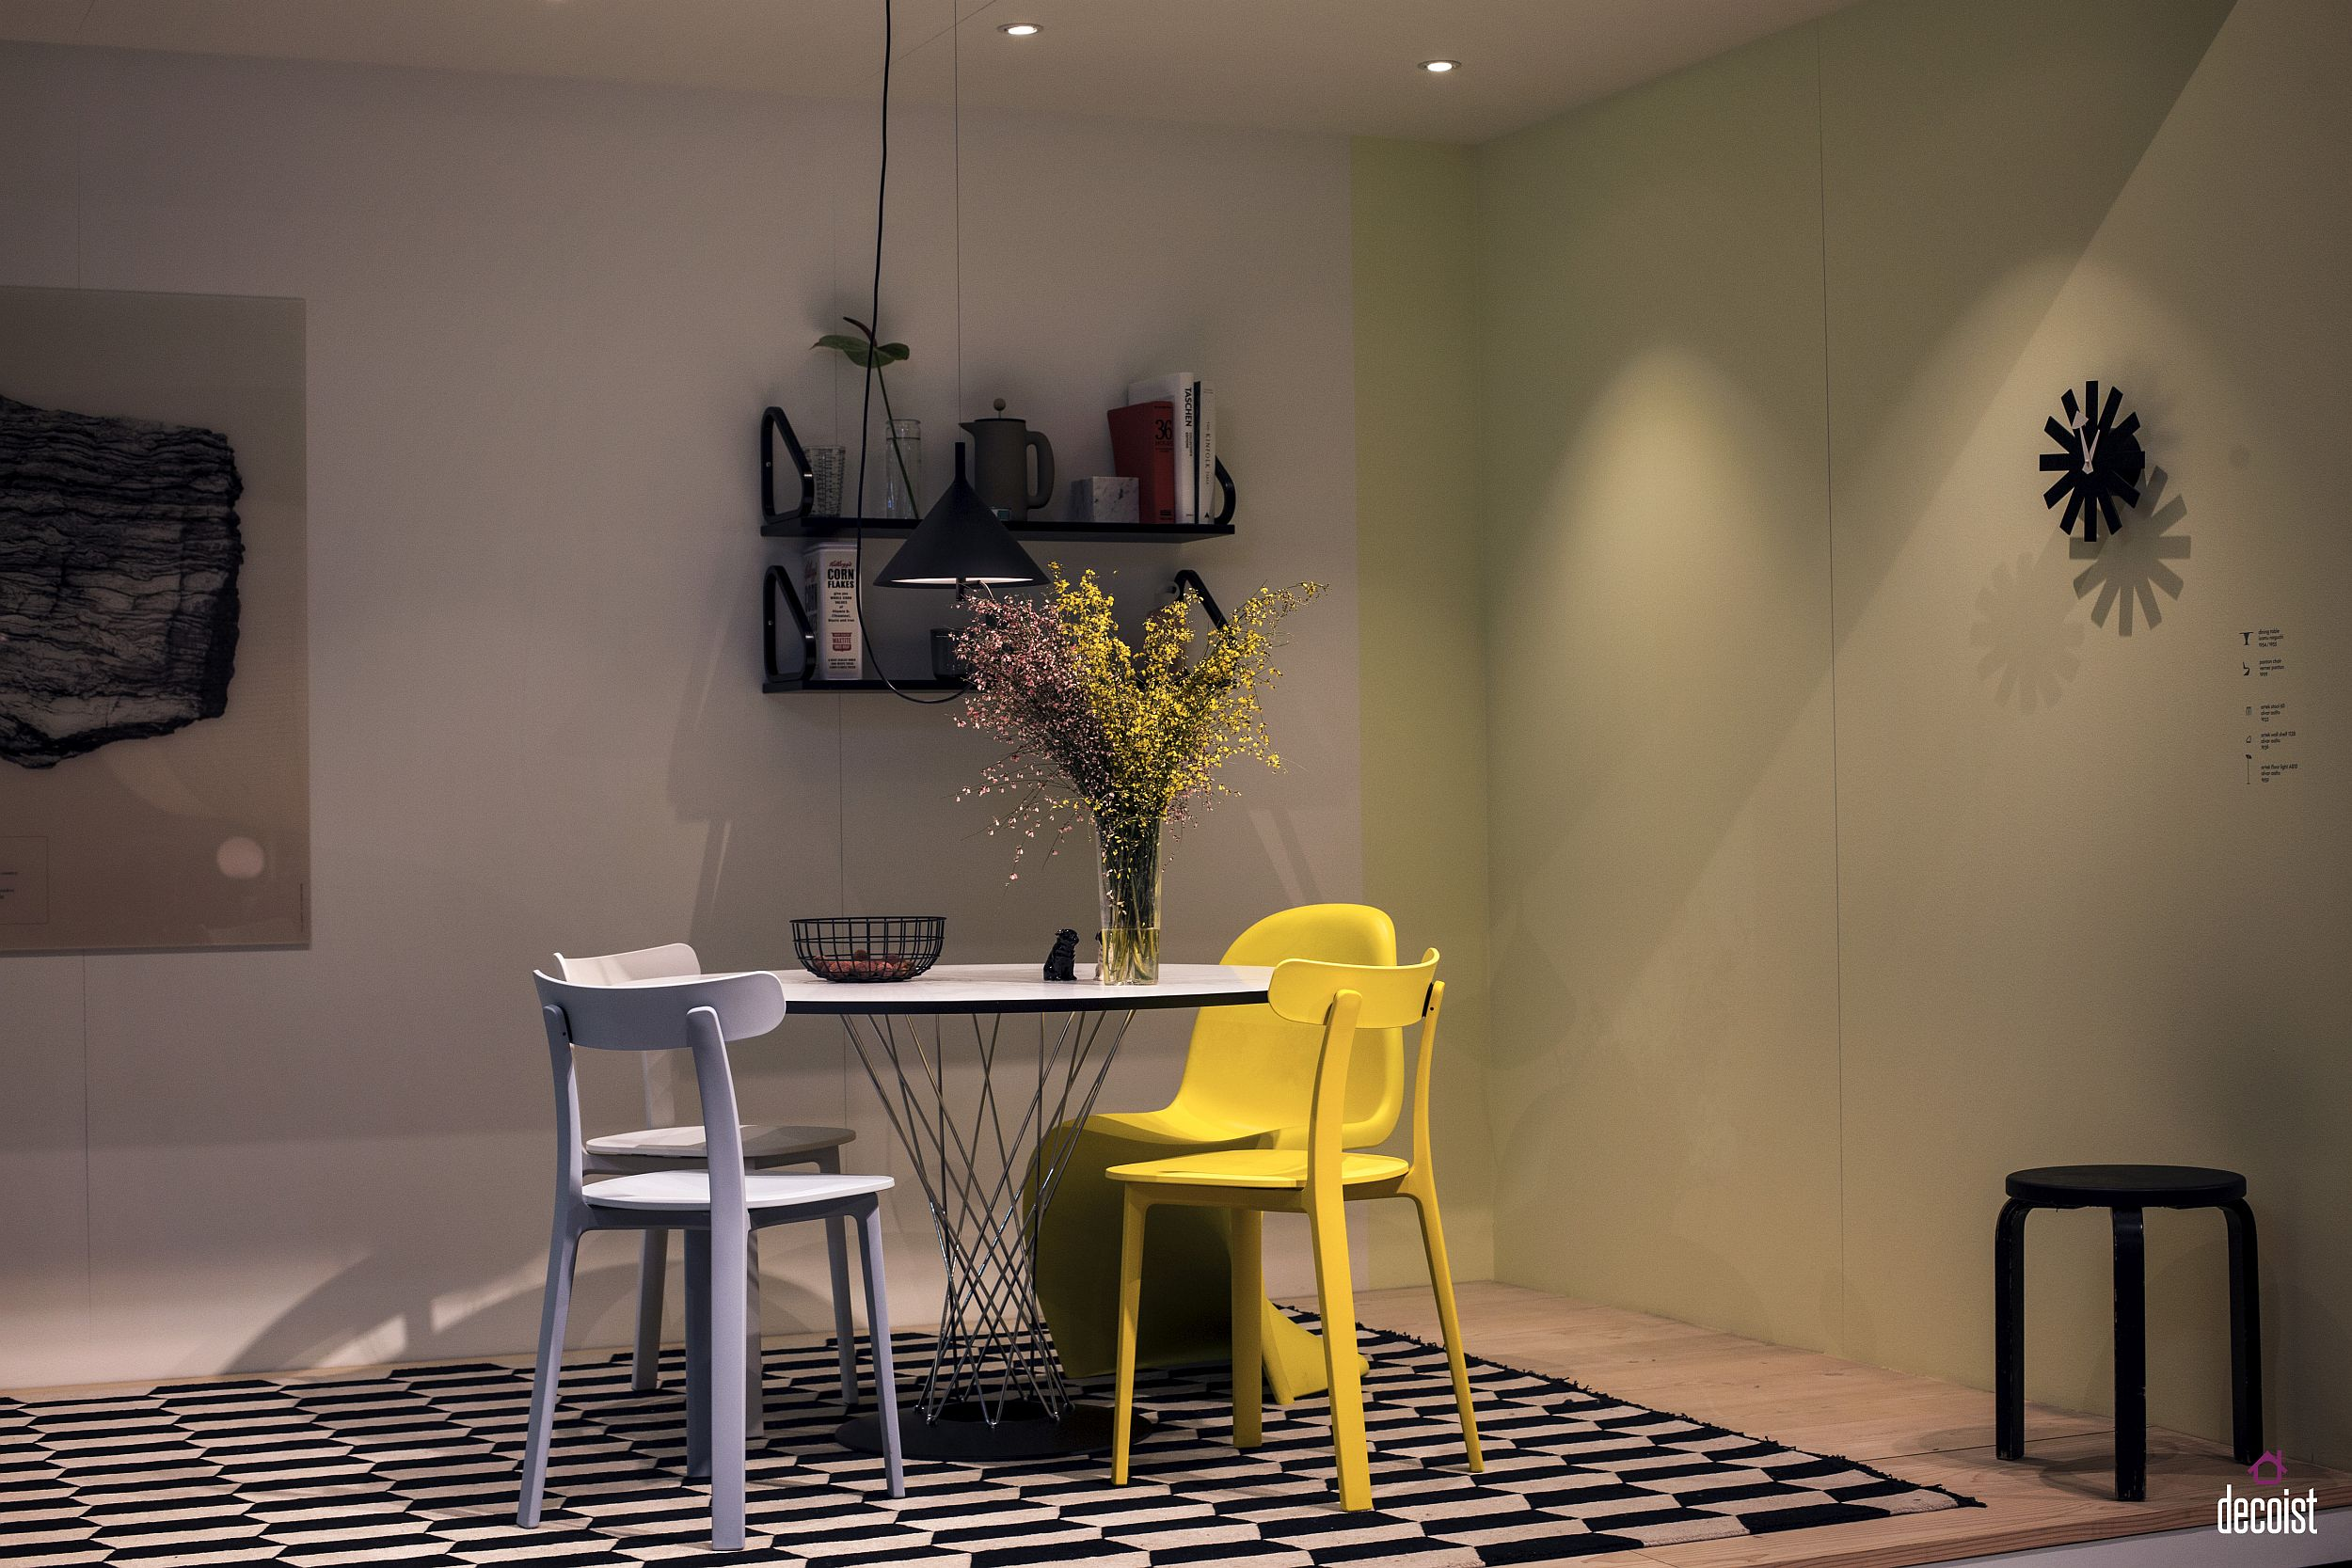 Couple of chairs in yellow brighten the dining room in neutral hues